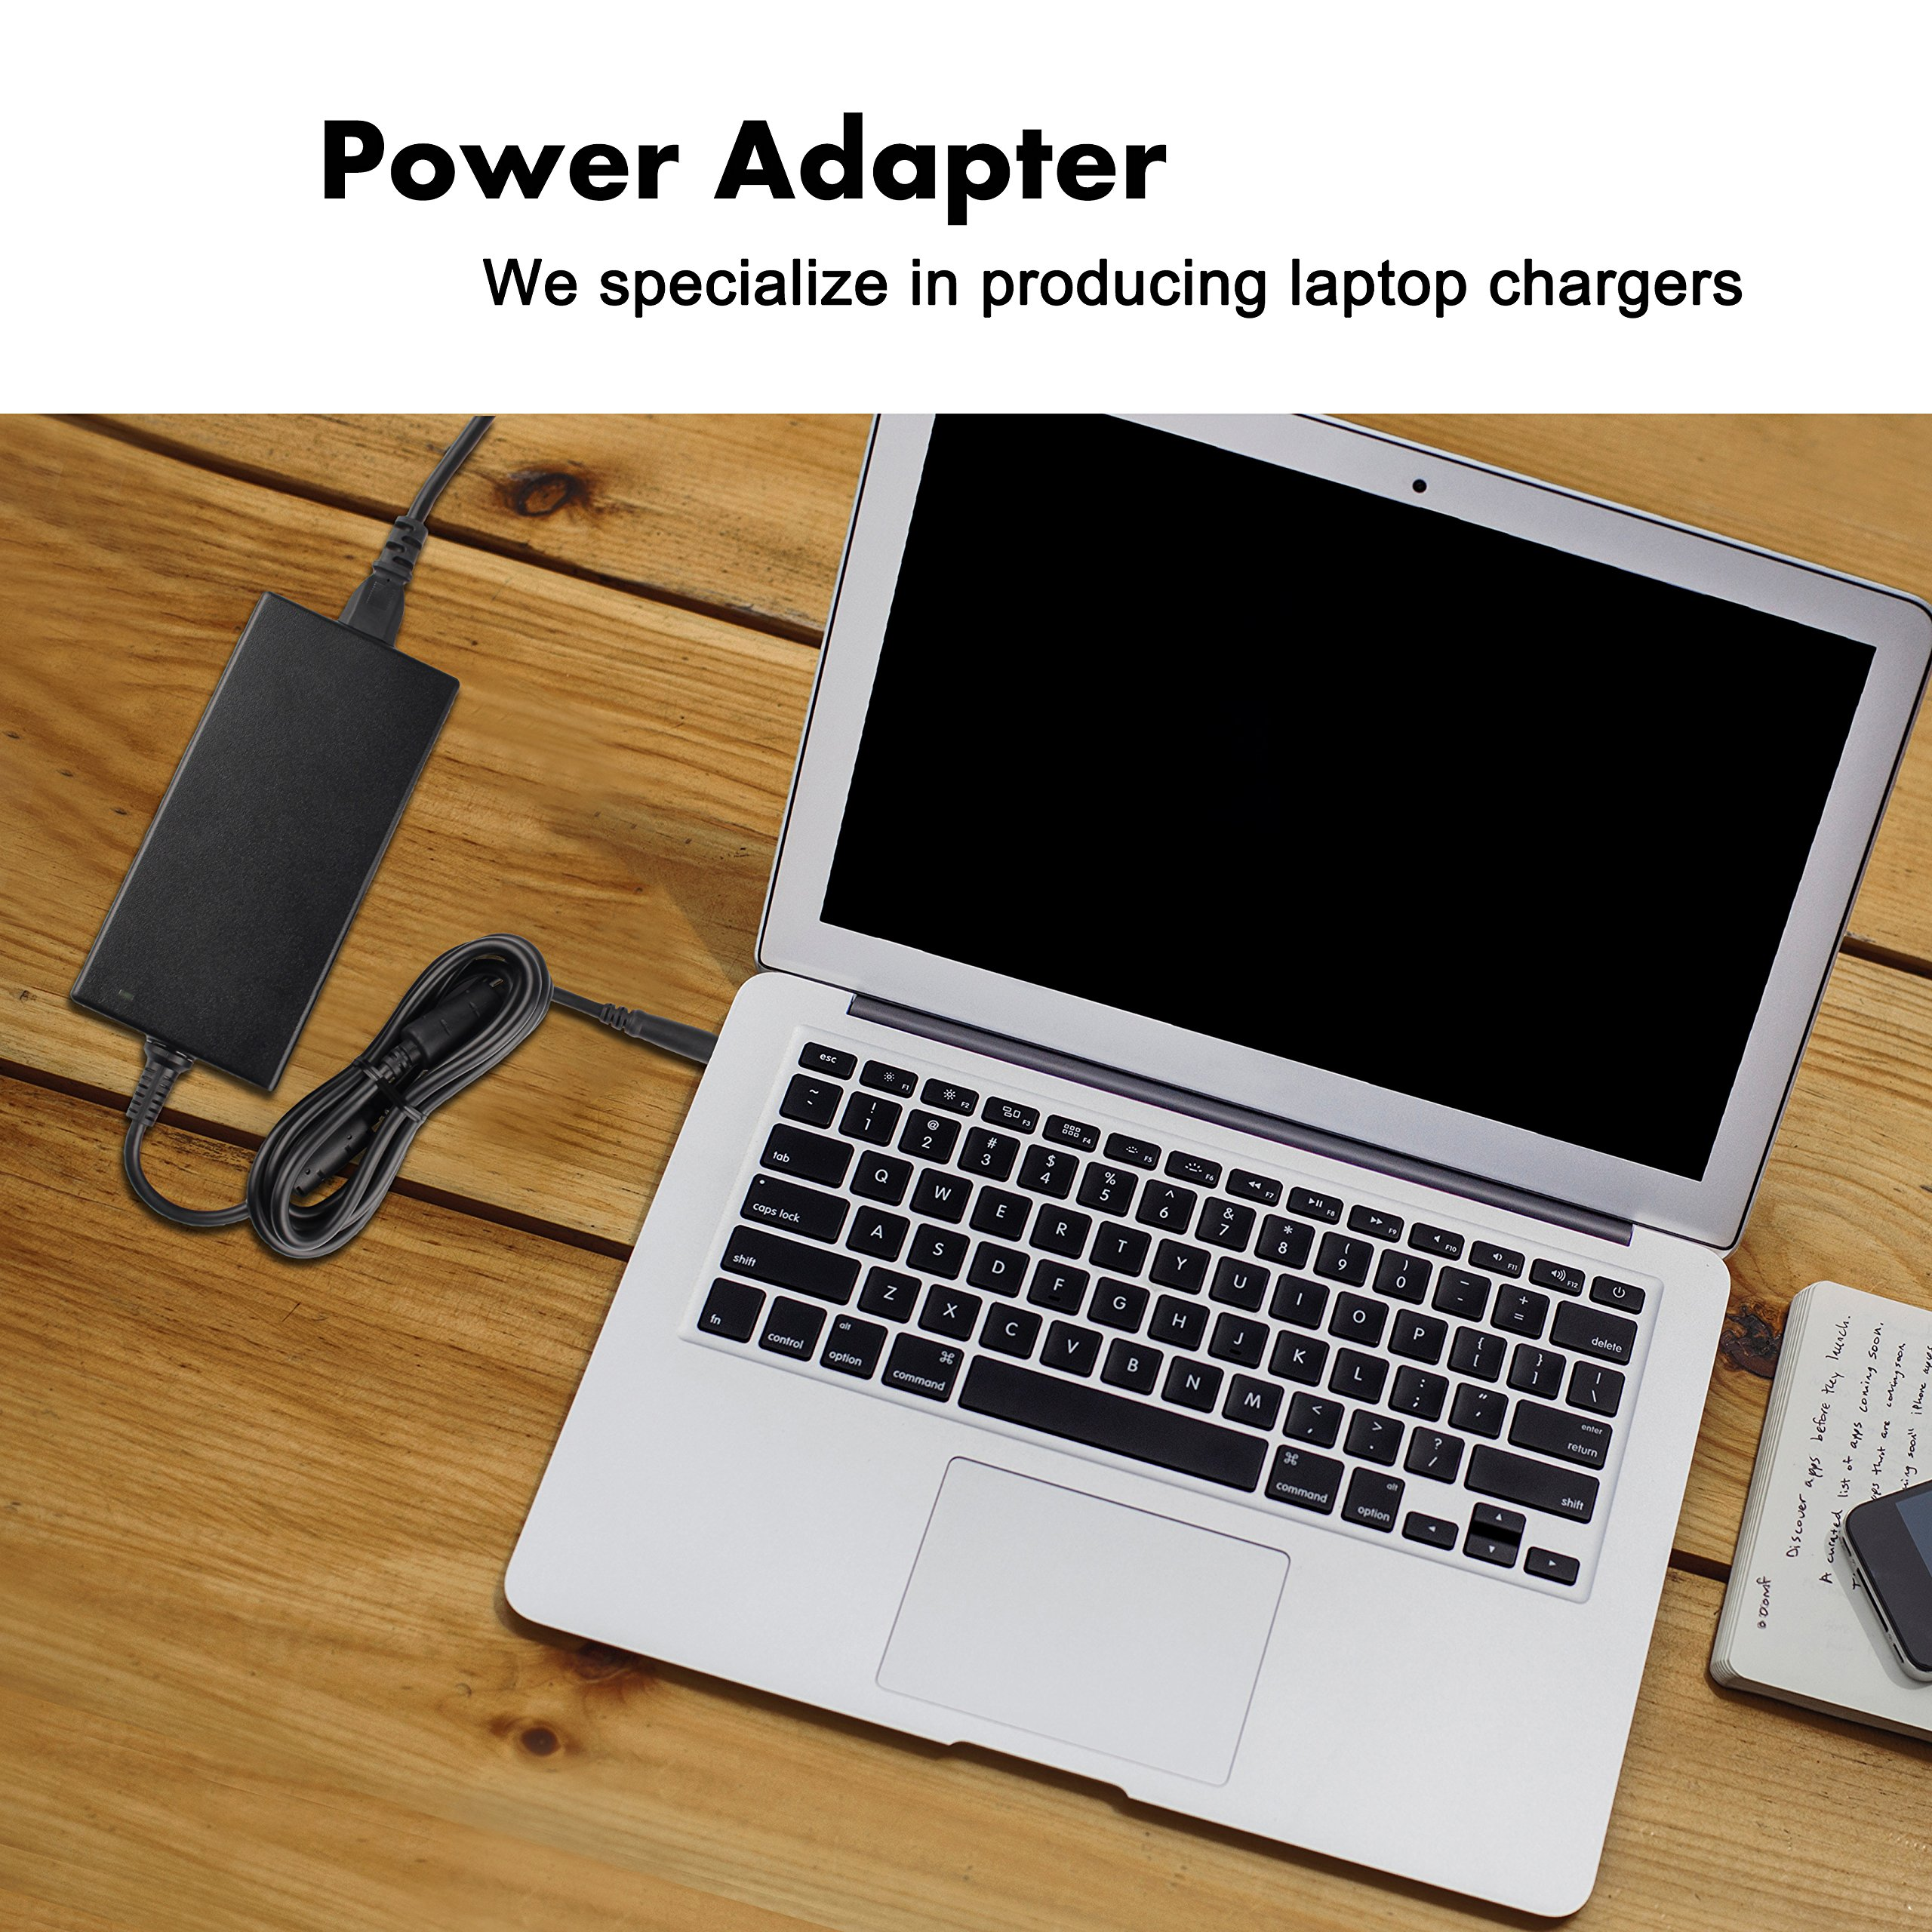 Juyoon 9.23A 180W AC Power Adapter Charger for DA180PM111 Dell Alienware 15 17 R2 R3 R4 M14x M15x M17x X51 R1 R2 Precision 7520 7510 7710 7720 M6800 M4800 M6700 M6600 M4700 M6500 Dock TB16 WD15 by JUYOON (Image #3)